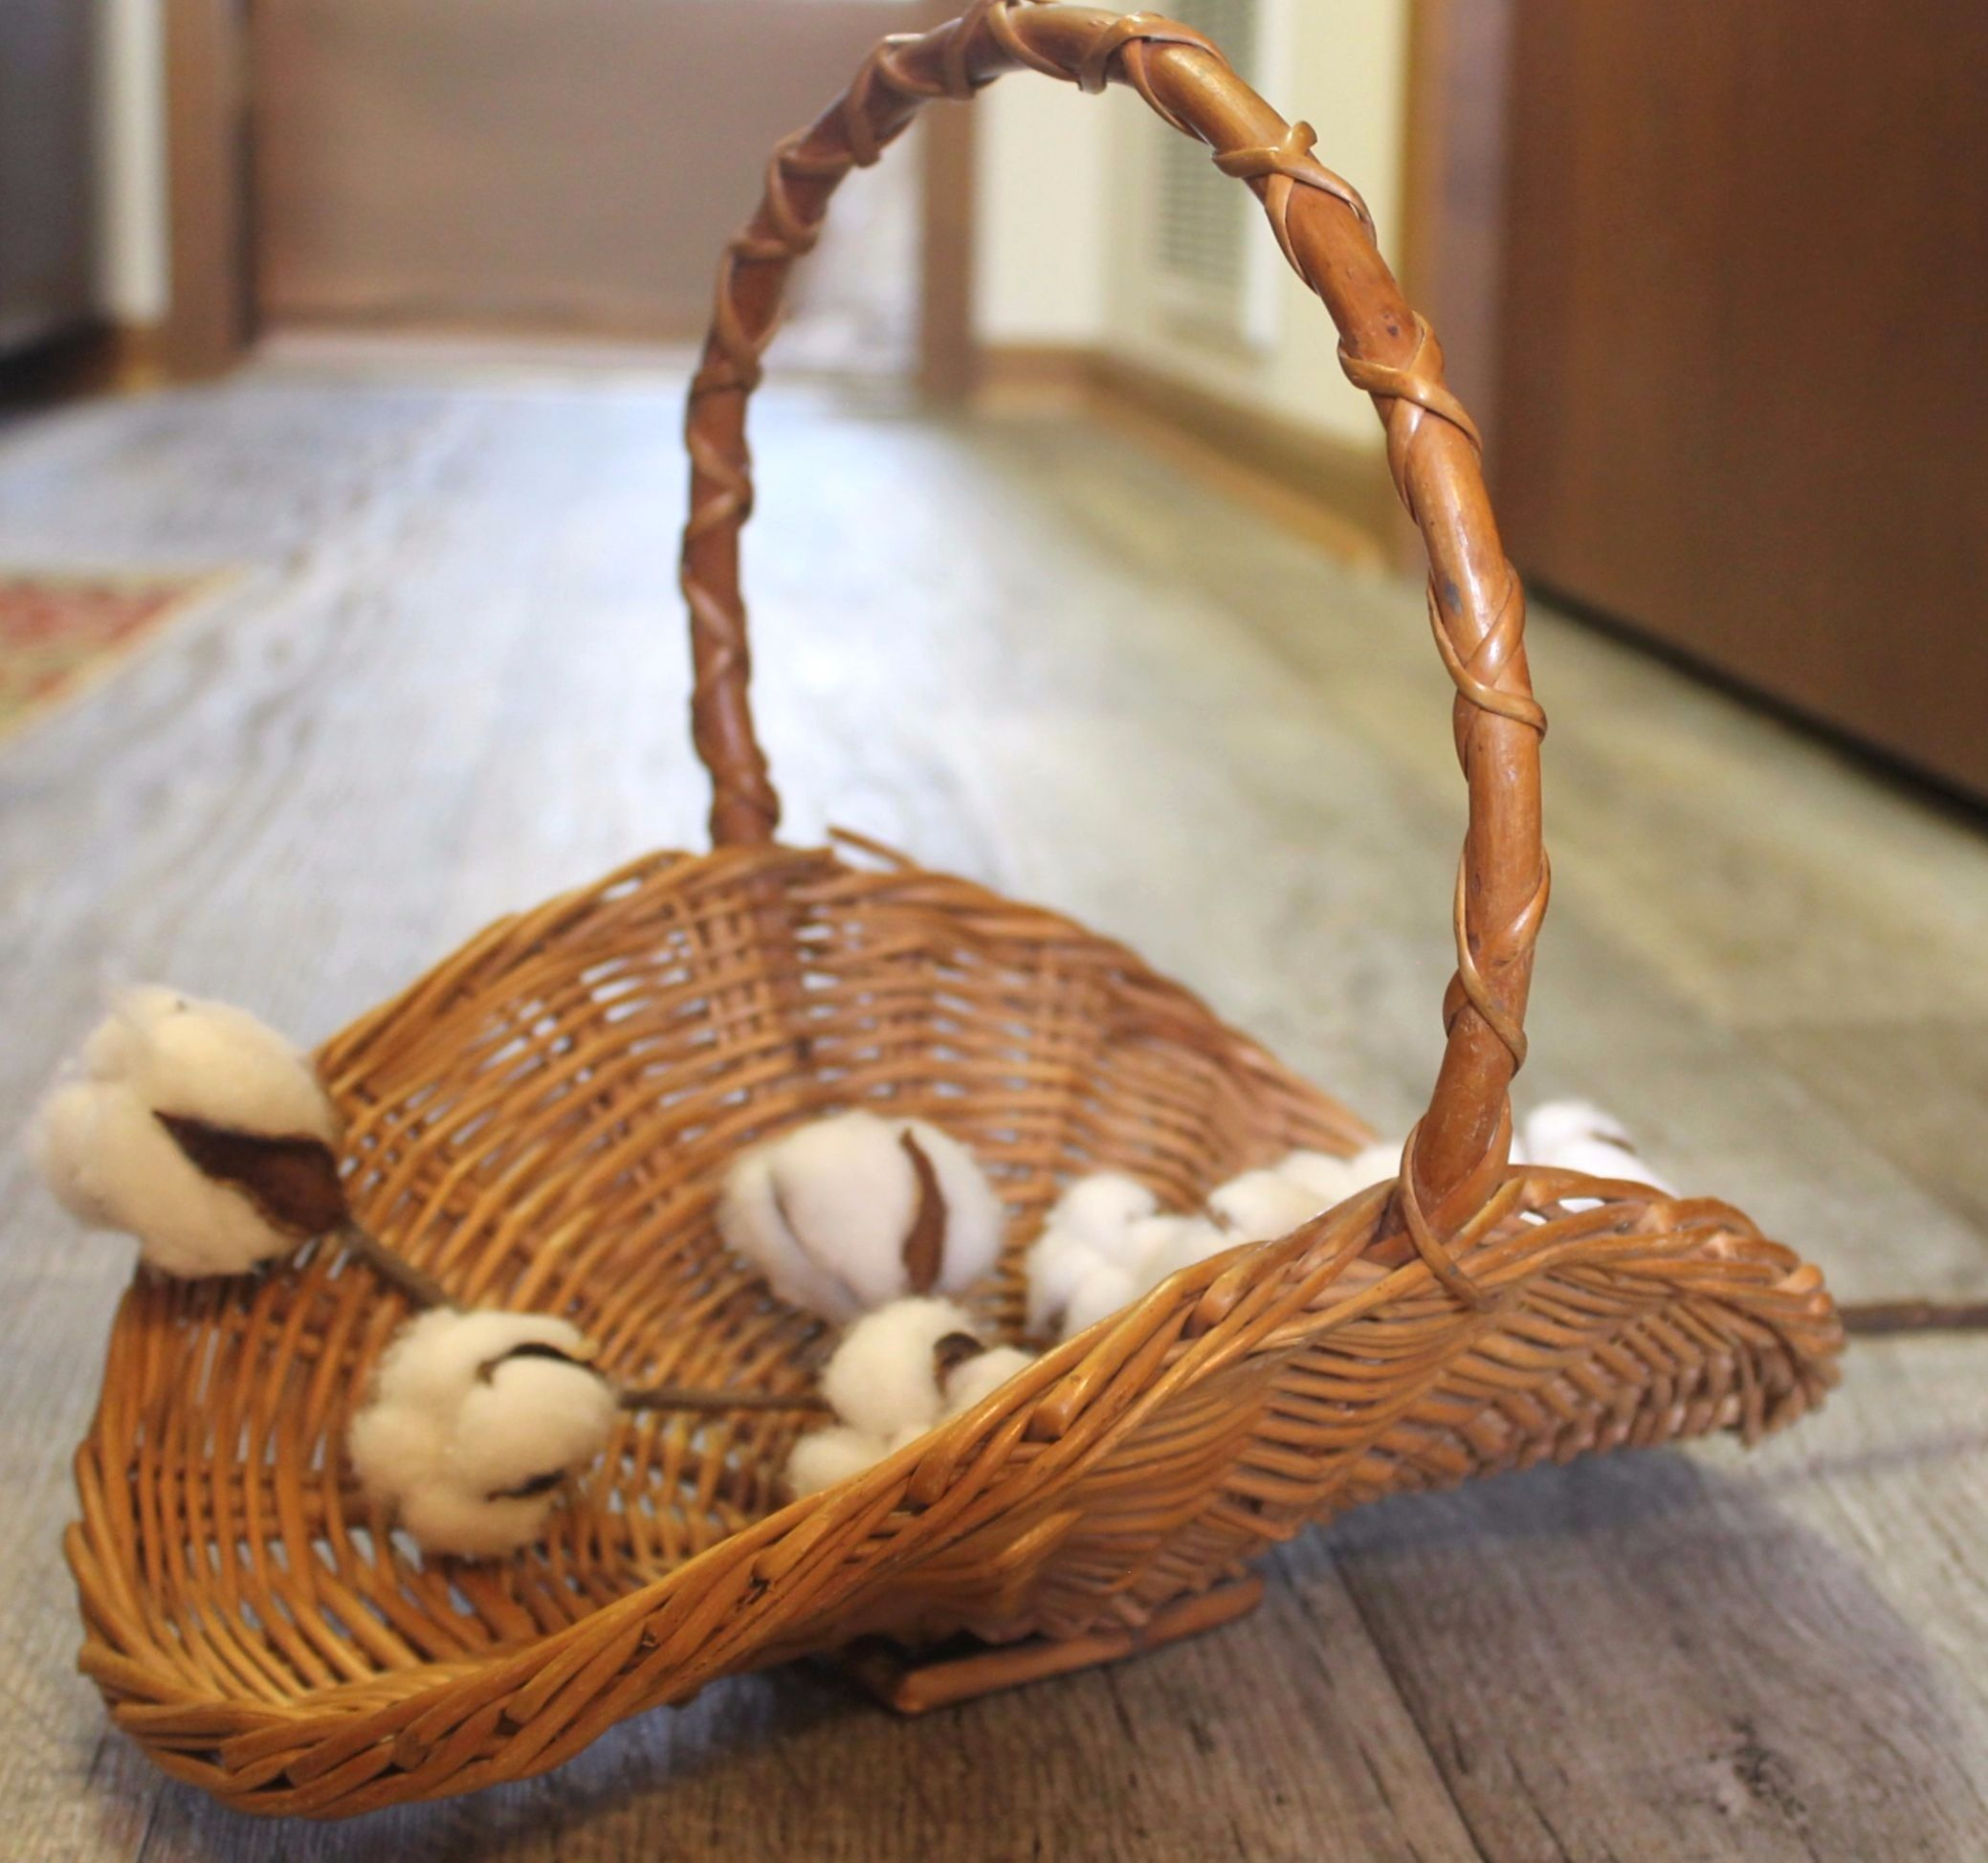 Antique farmhouse style basket FOR SALE! Check out my page